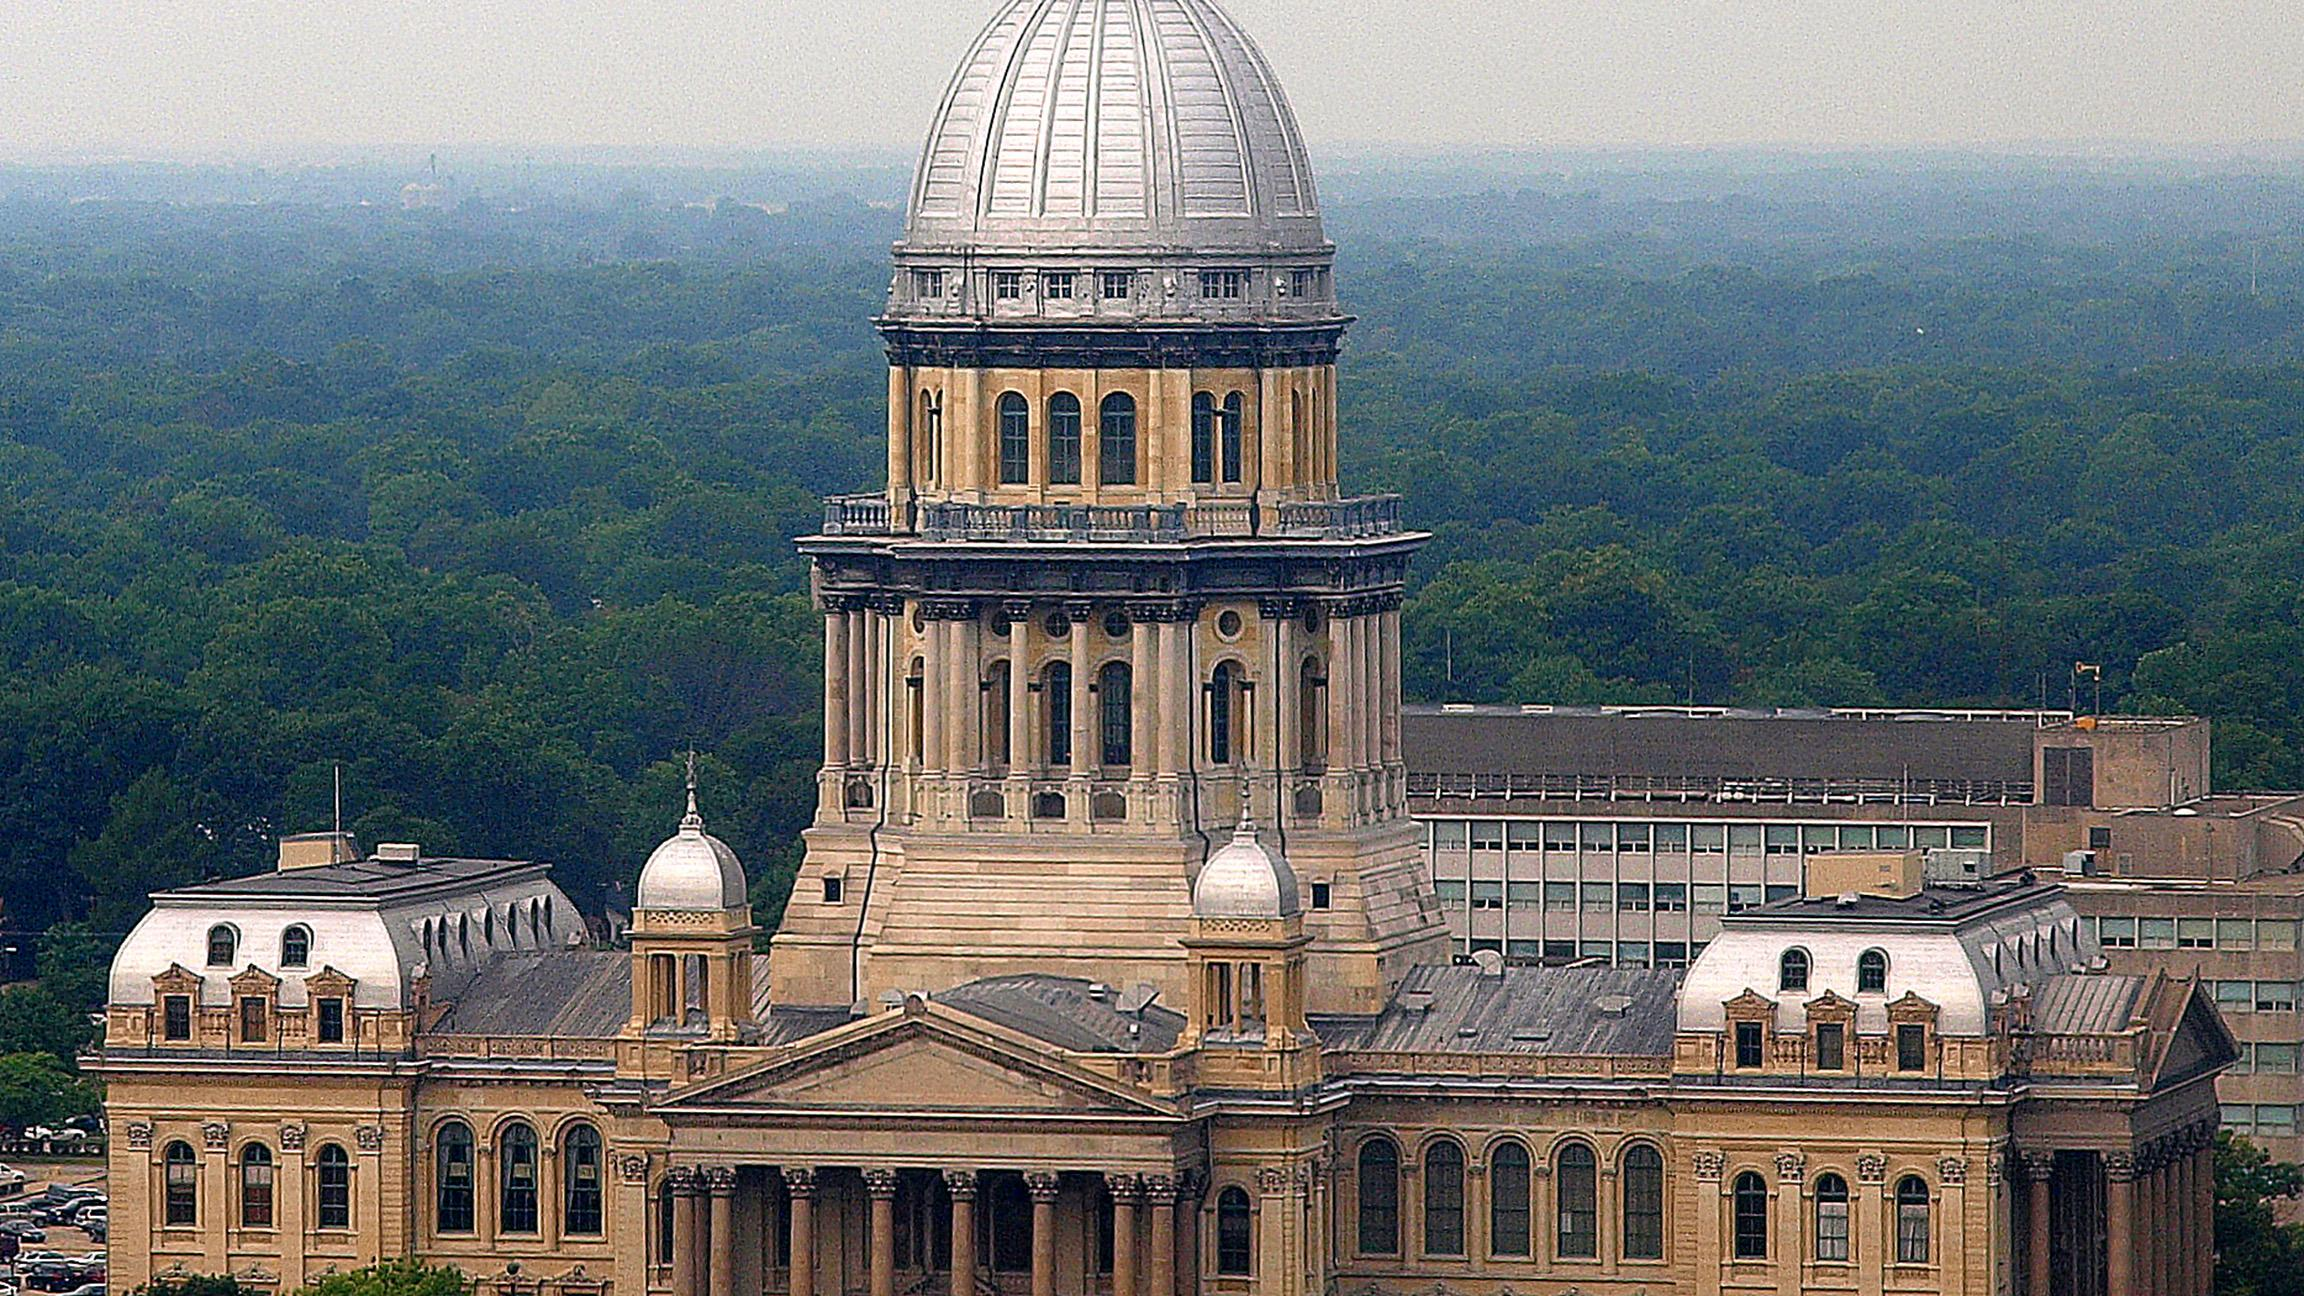 Trust lacking in Illinois failure to OK budget by deadline